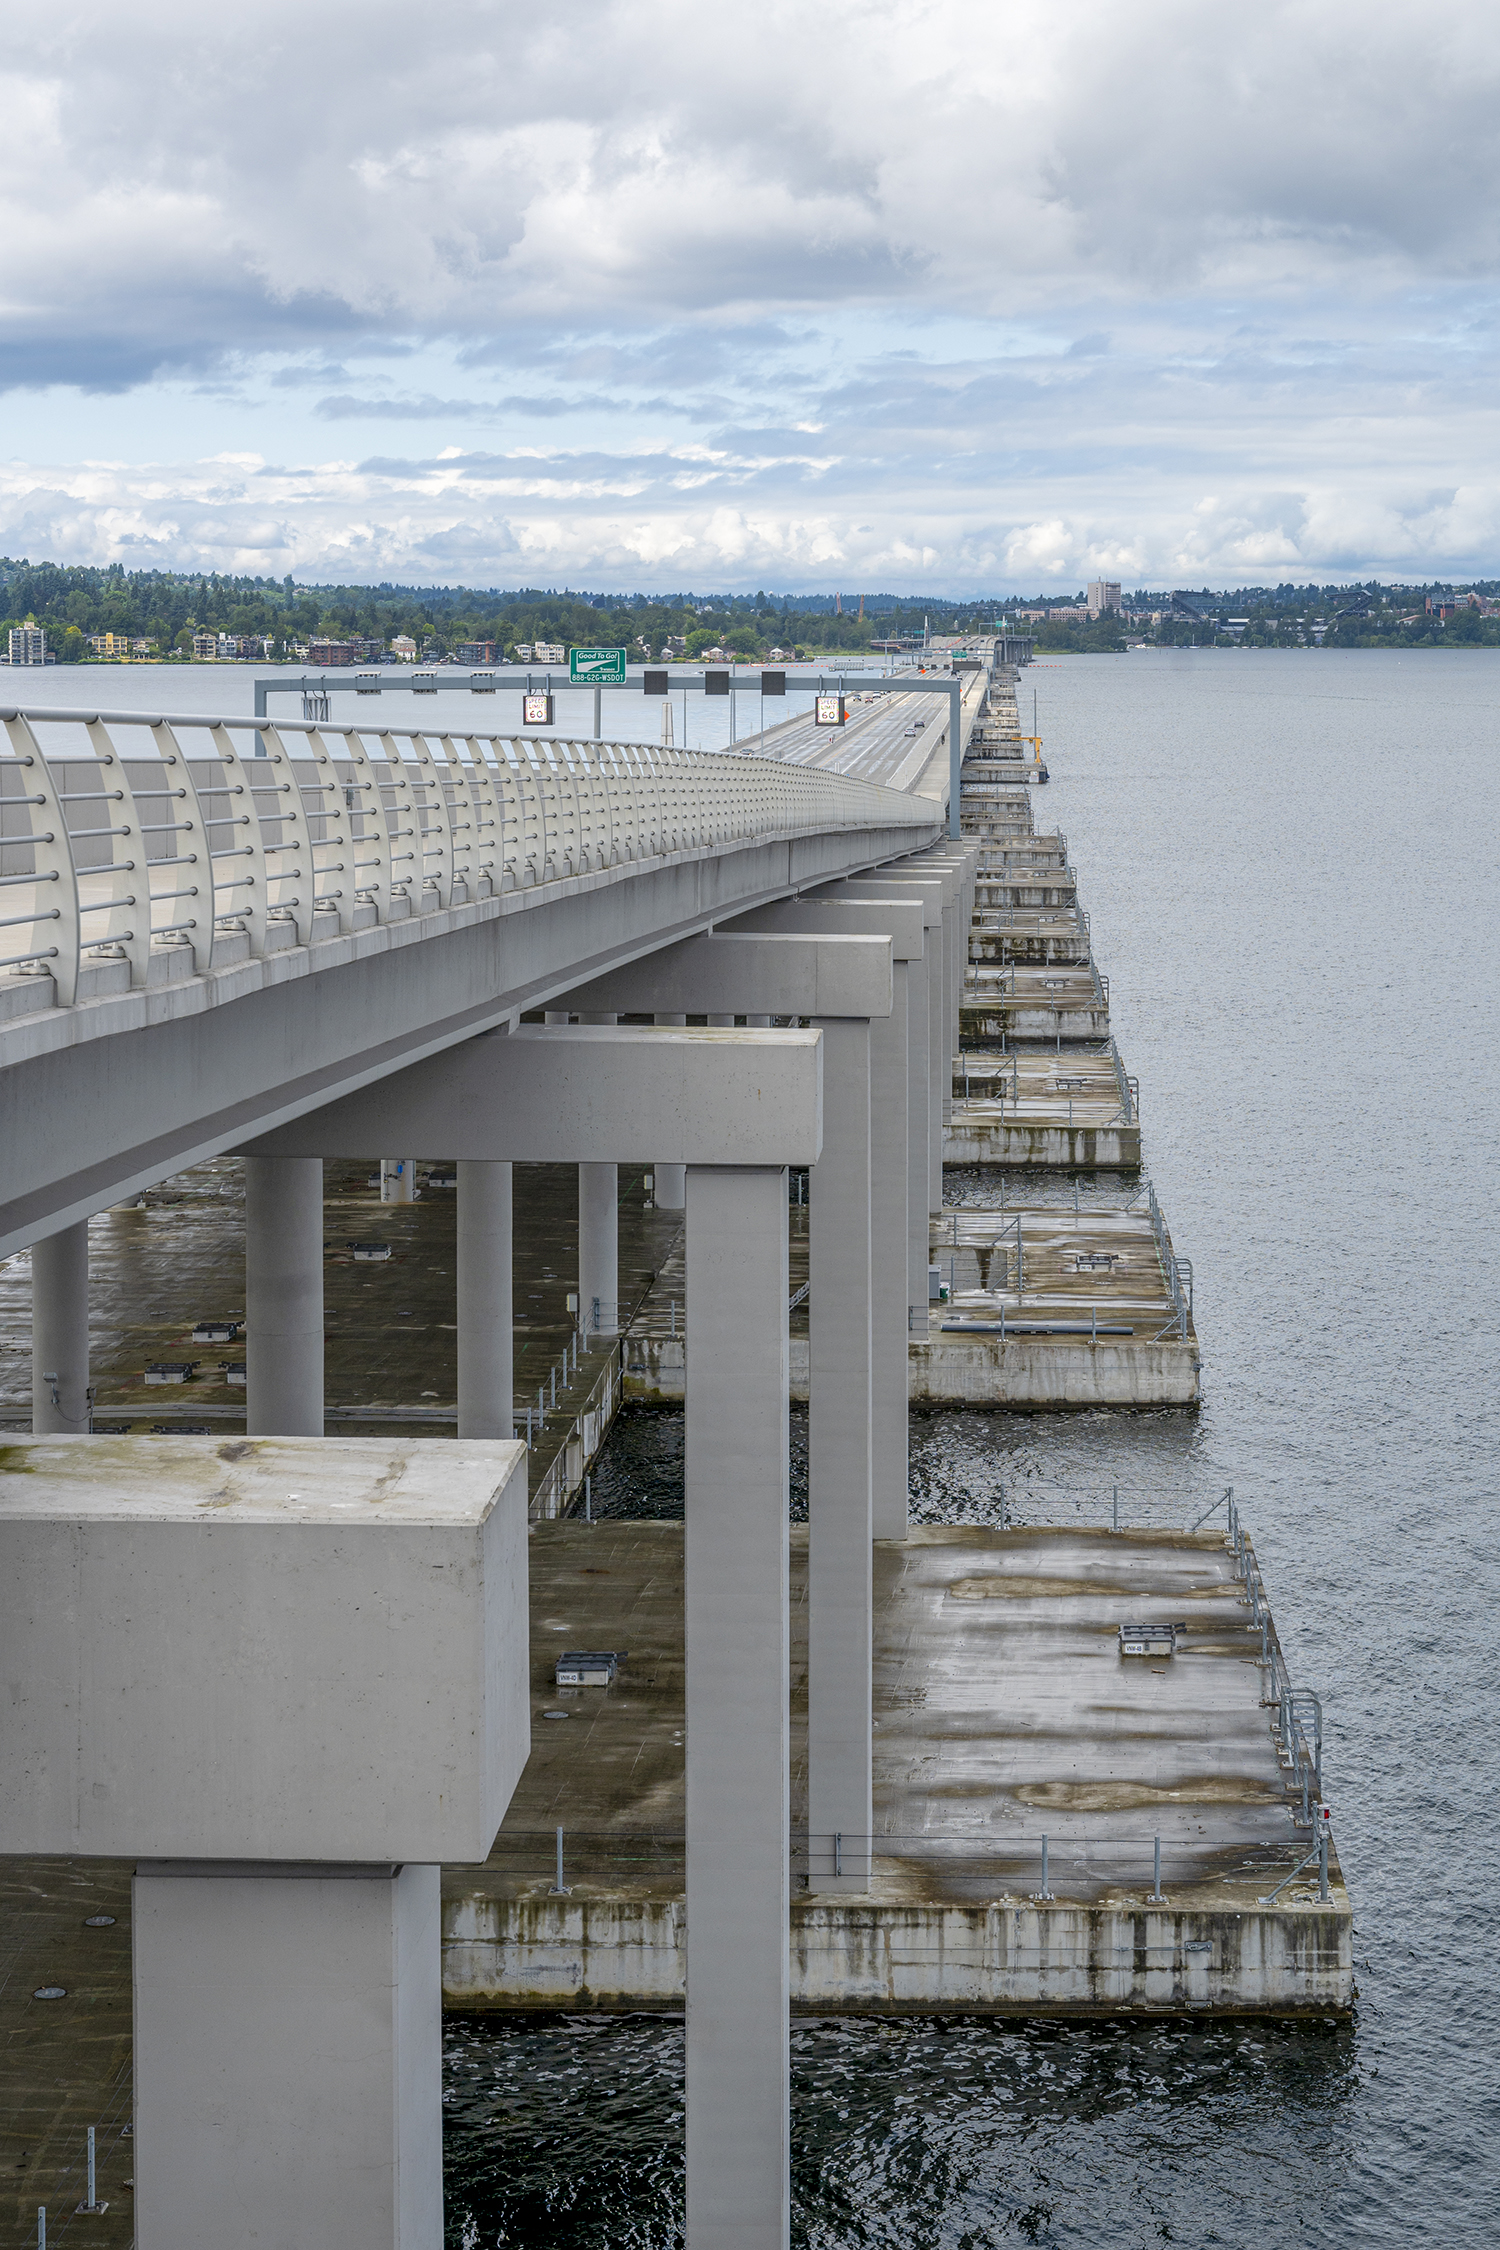 The 520 Bridge. The new six-lane bridge, completed in 2016, replaces the one built in 1962 and allows drivers, cyclists and pedestrians to cross the span of Lake Washington from Seattle to Bellevue. Plus, the new floating bridge was designed to accommodate light rail transit in the future. (Image: Rachael Jones / Seattle Refined)